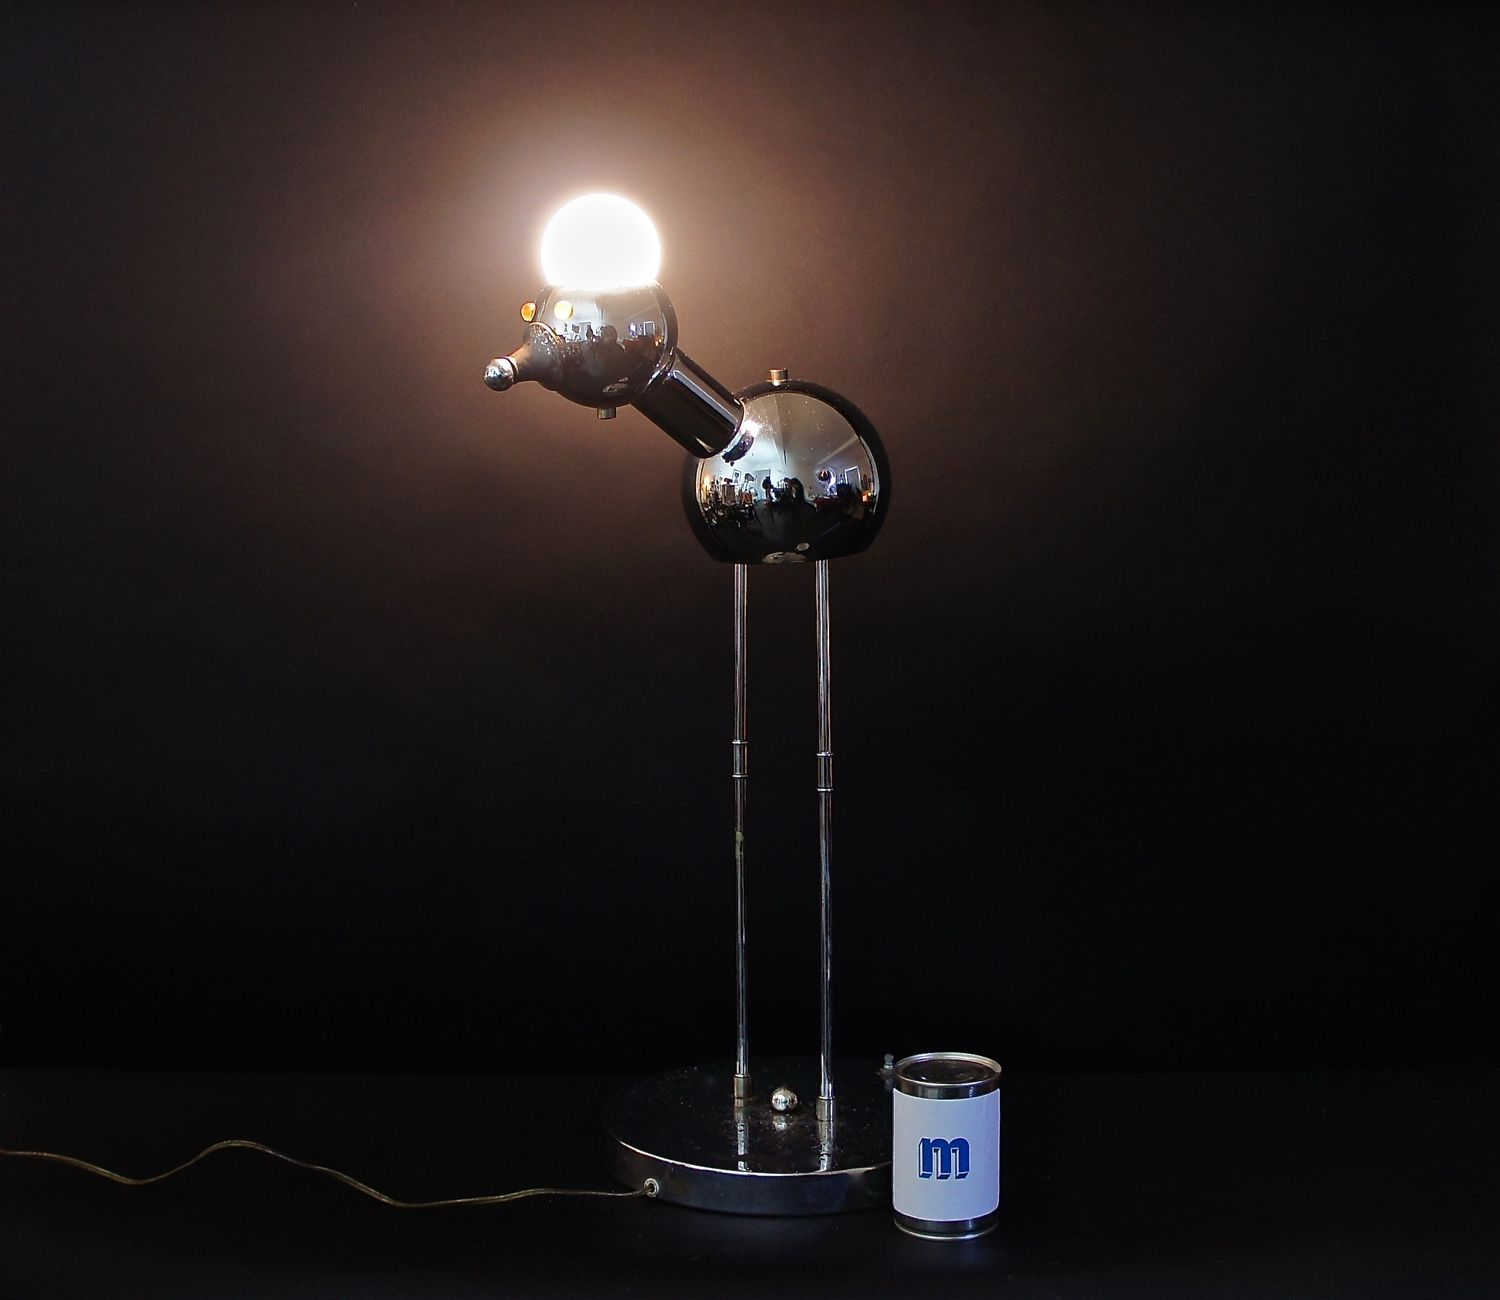 Torino Bird Robot Lamp Robot Lamp Lamp Chrome Lamp